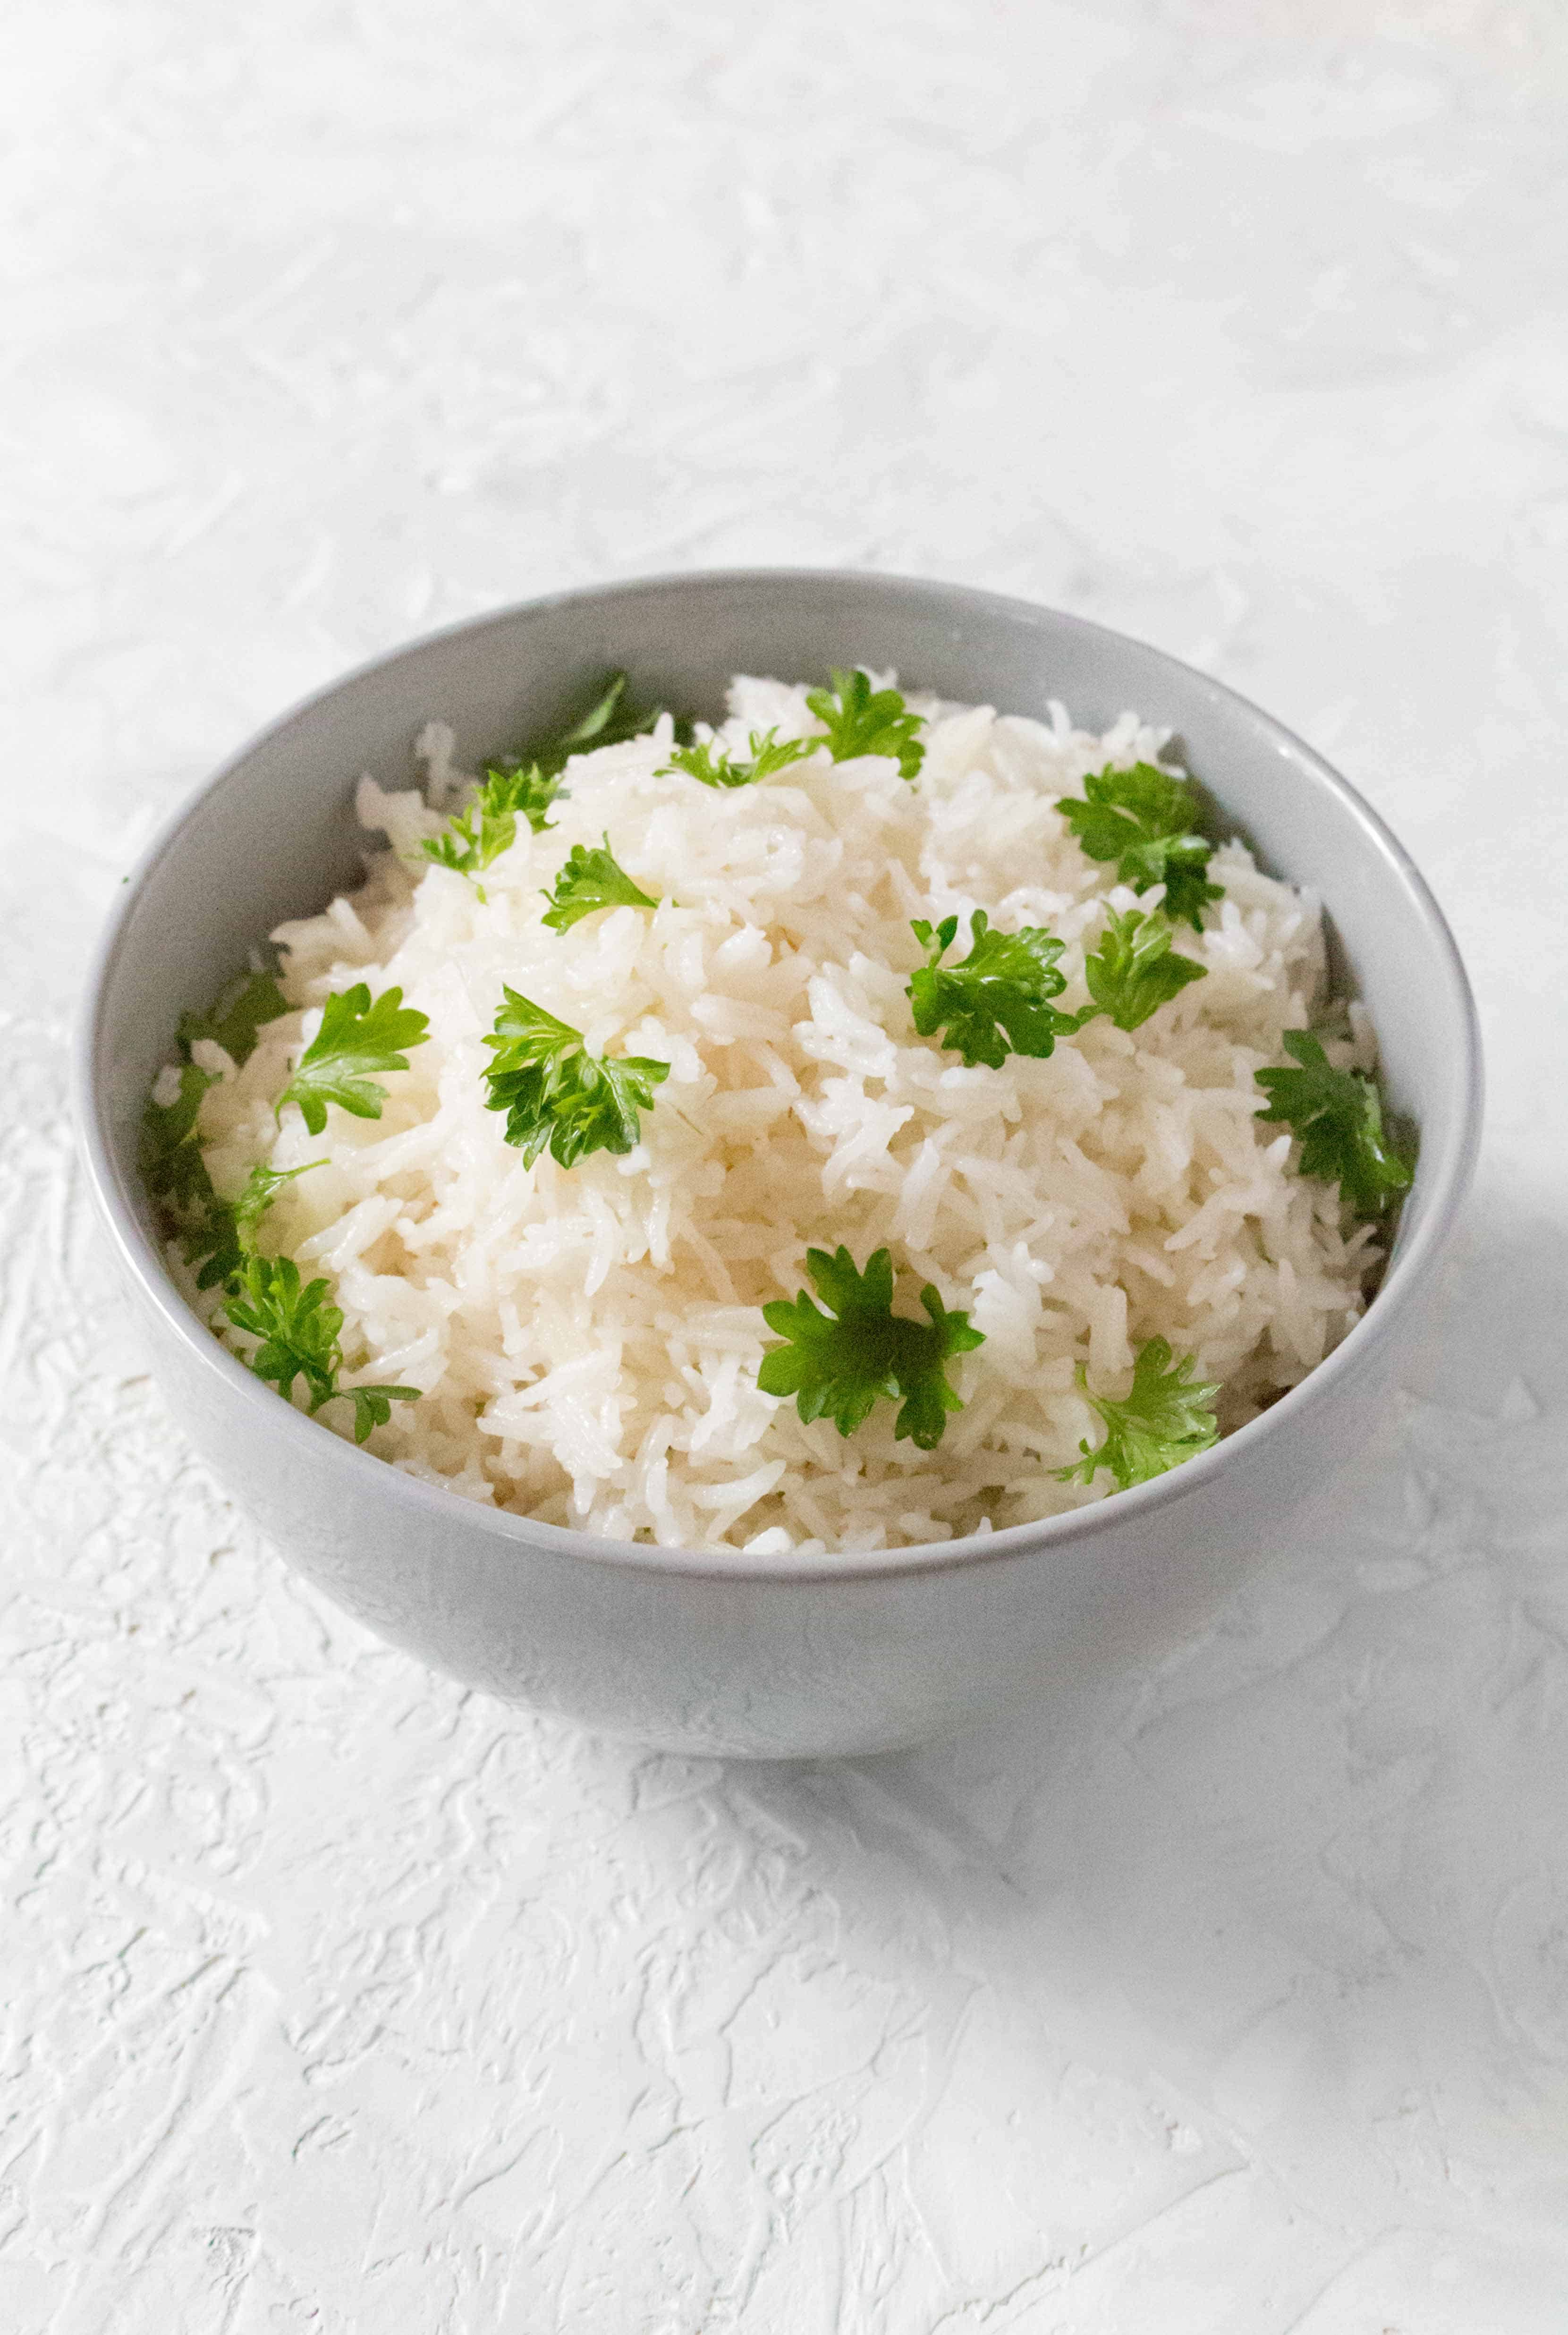 This easy Instant Pot Coconut Rice is the perfect side dish! Make it in under 15 minutes with only a couple simple ingredients!